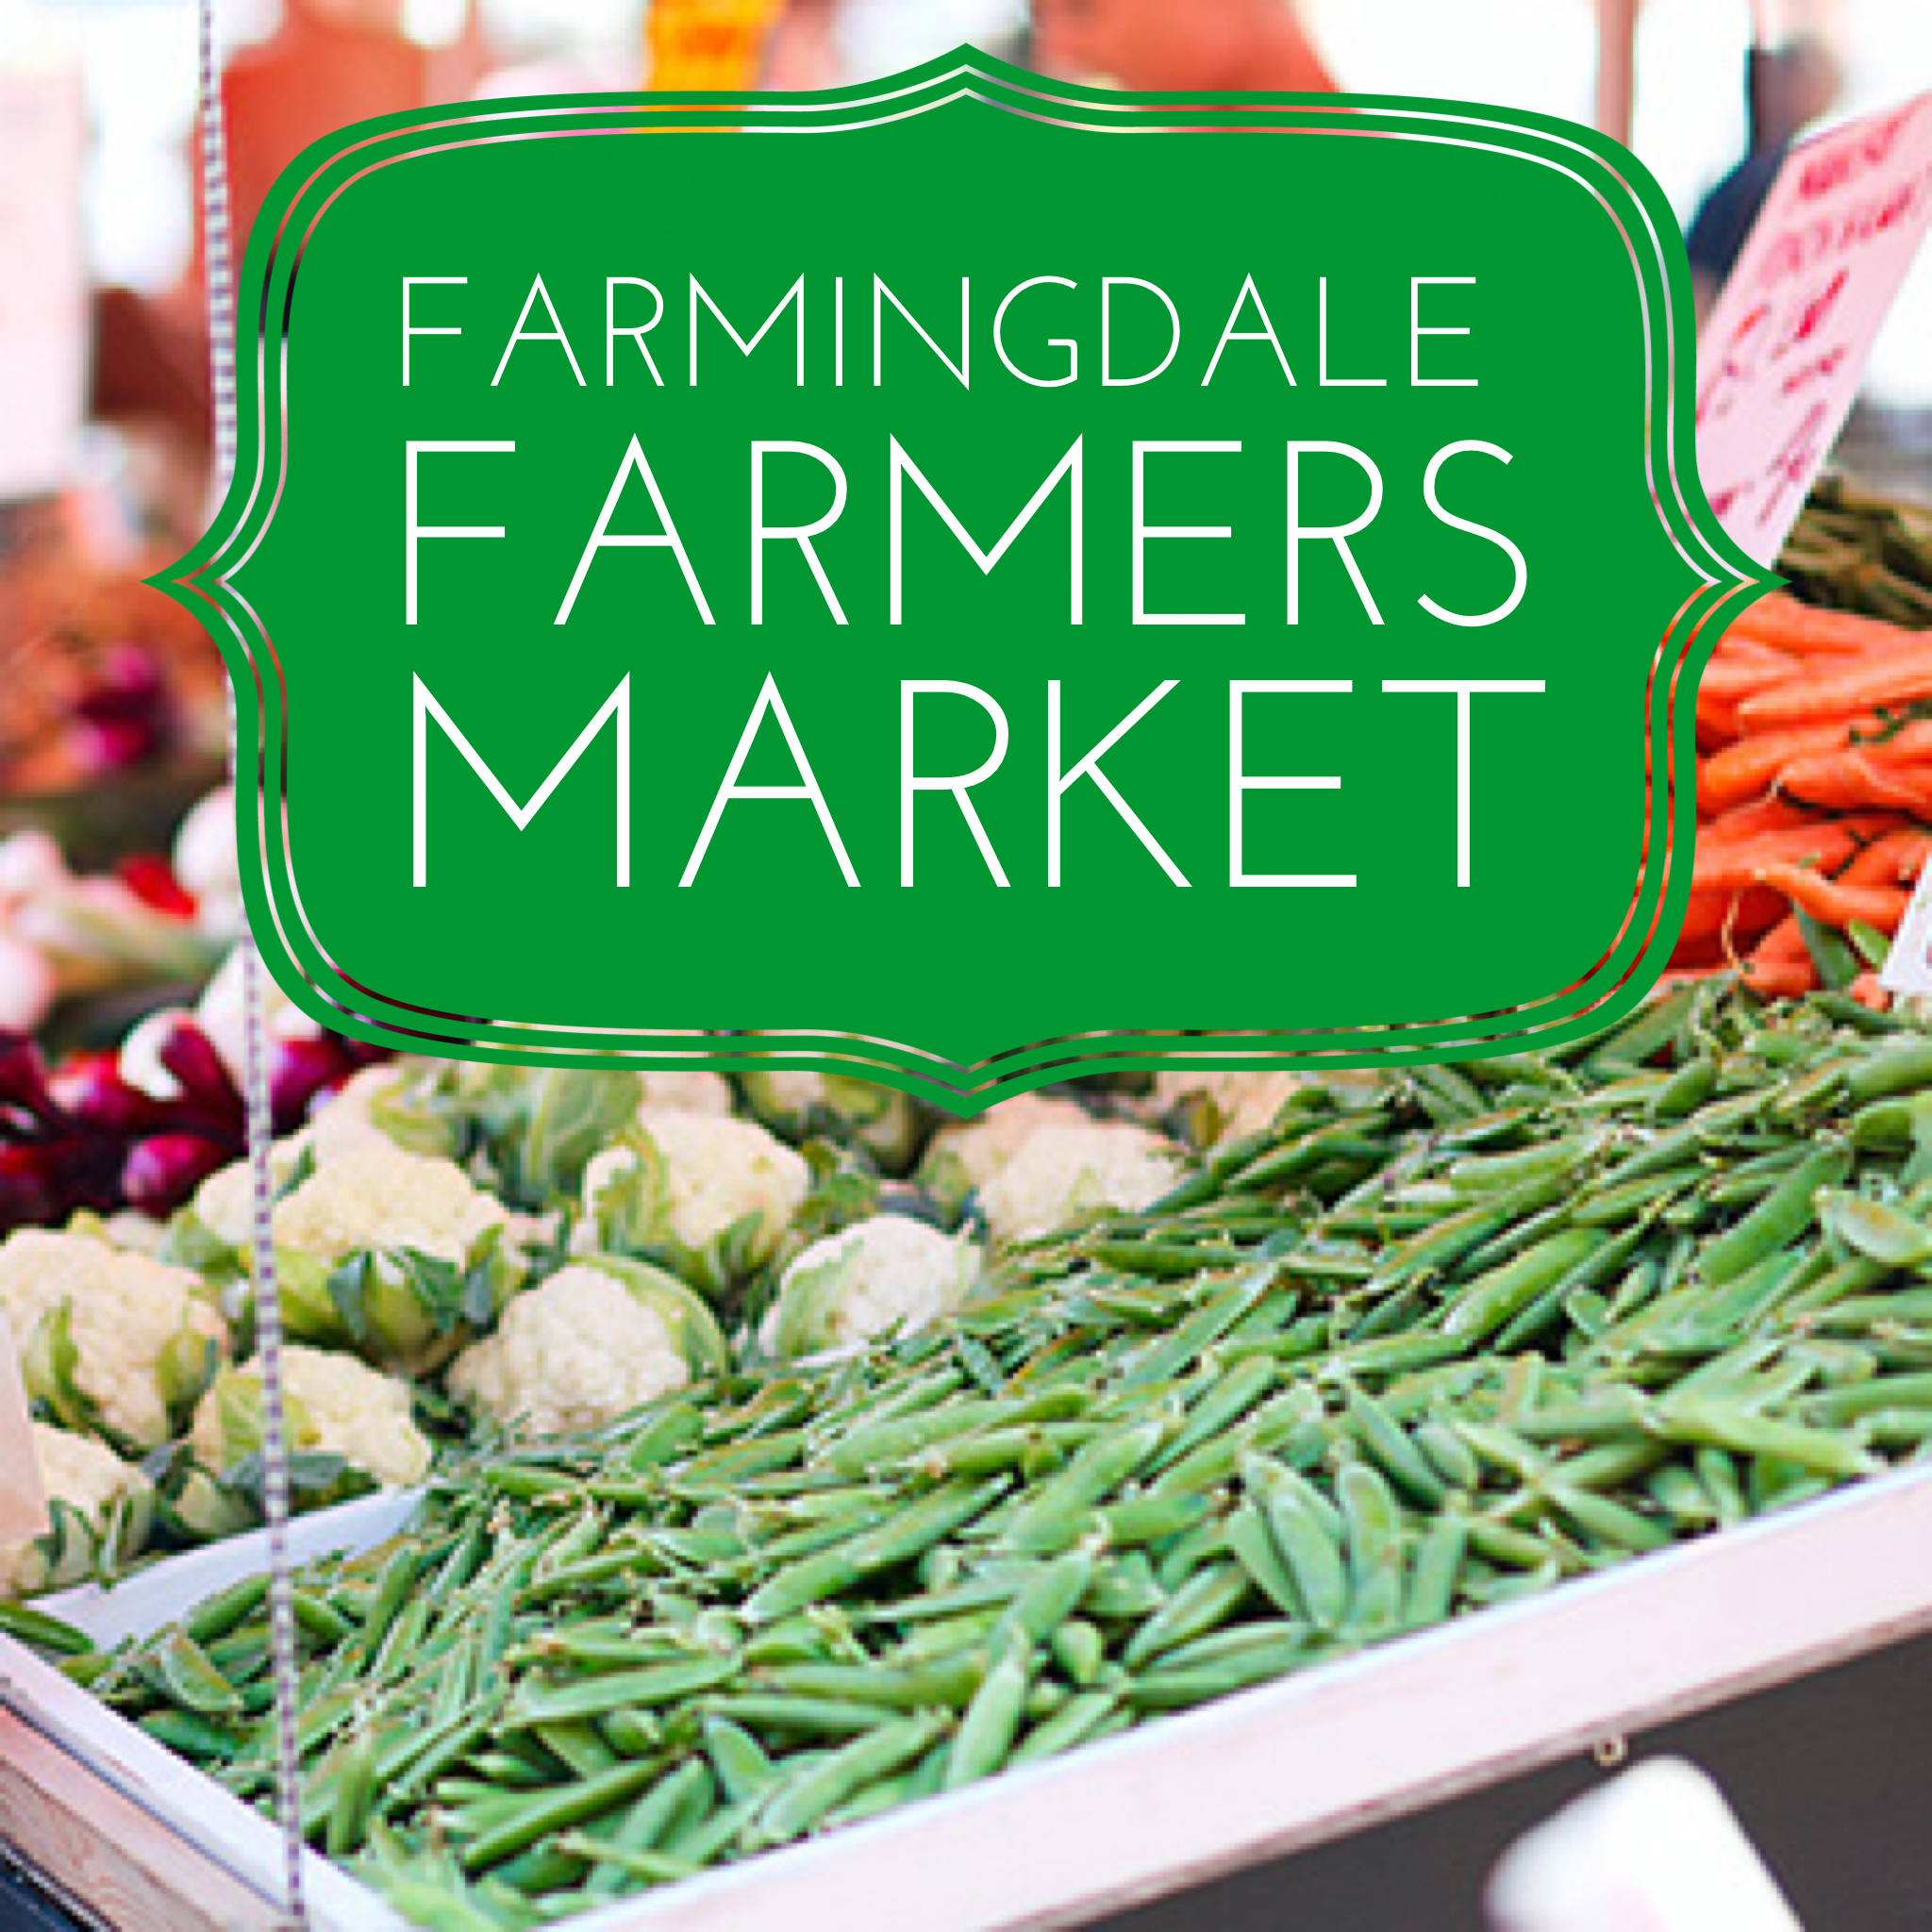 Farmers Market On The Green